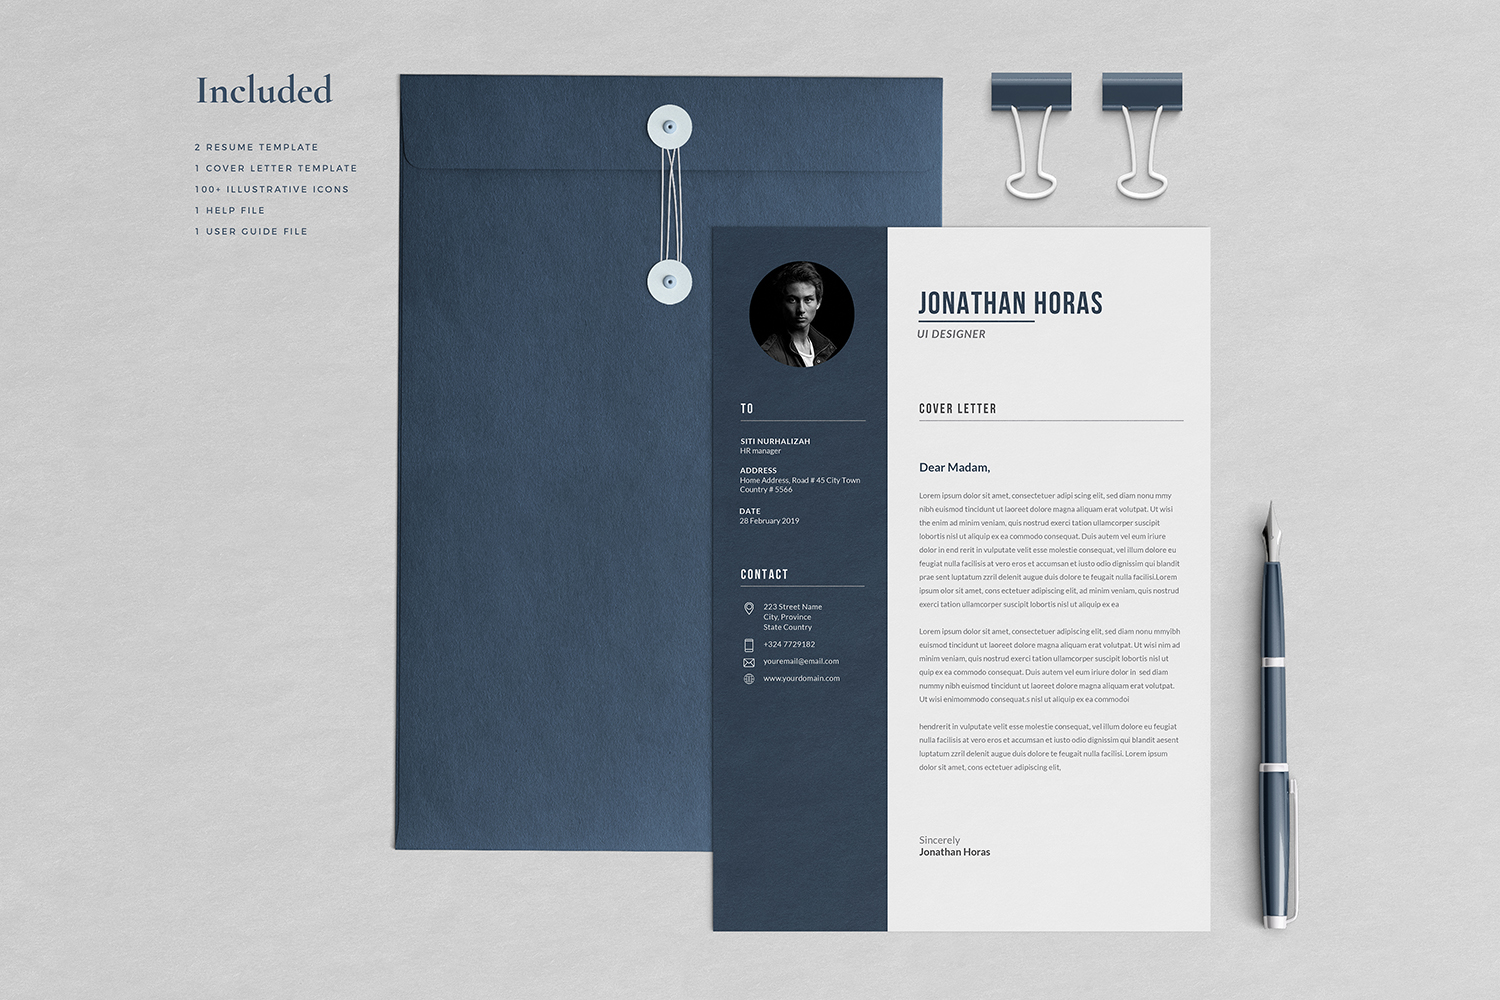 Jonathan Resume with Cover Letter Professional Template example image 3